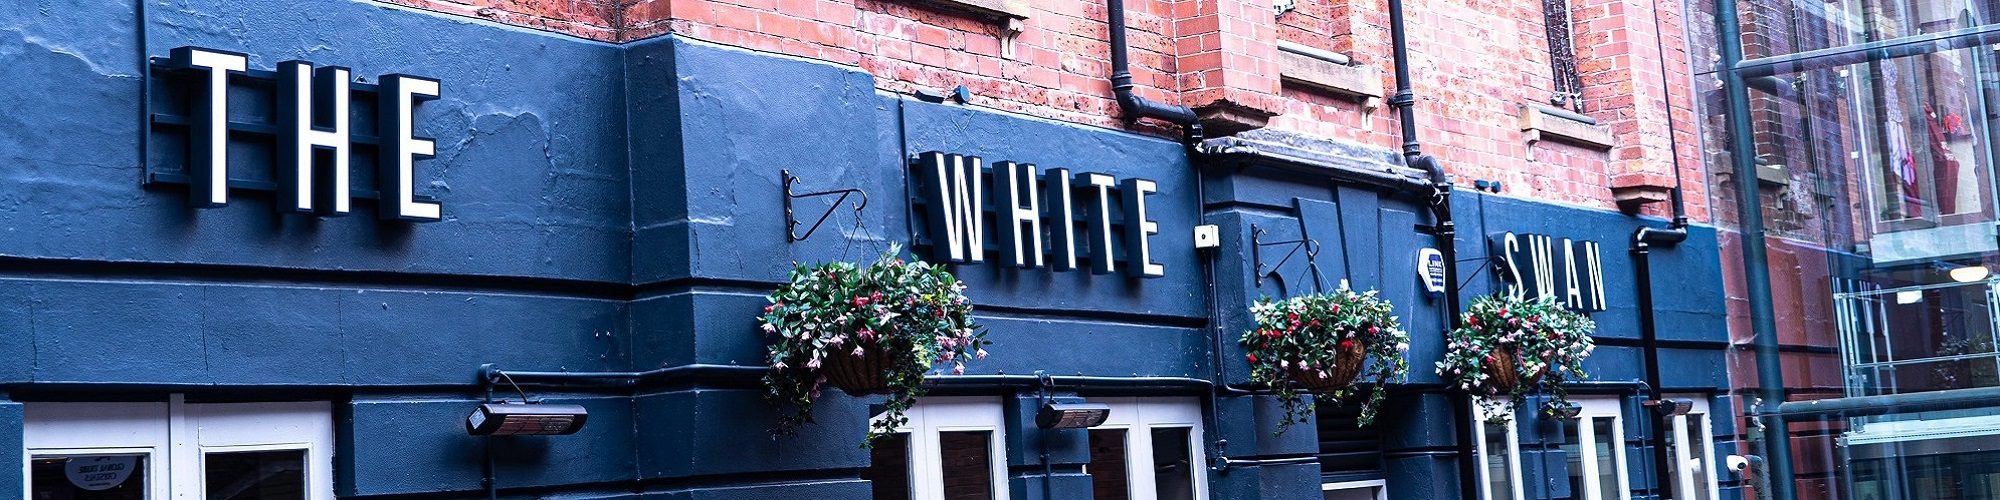 The White Swan exterior cropped